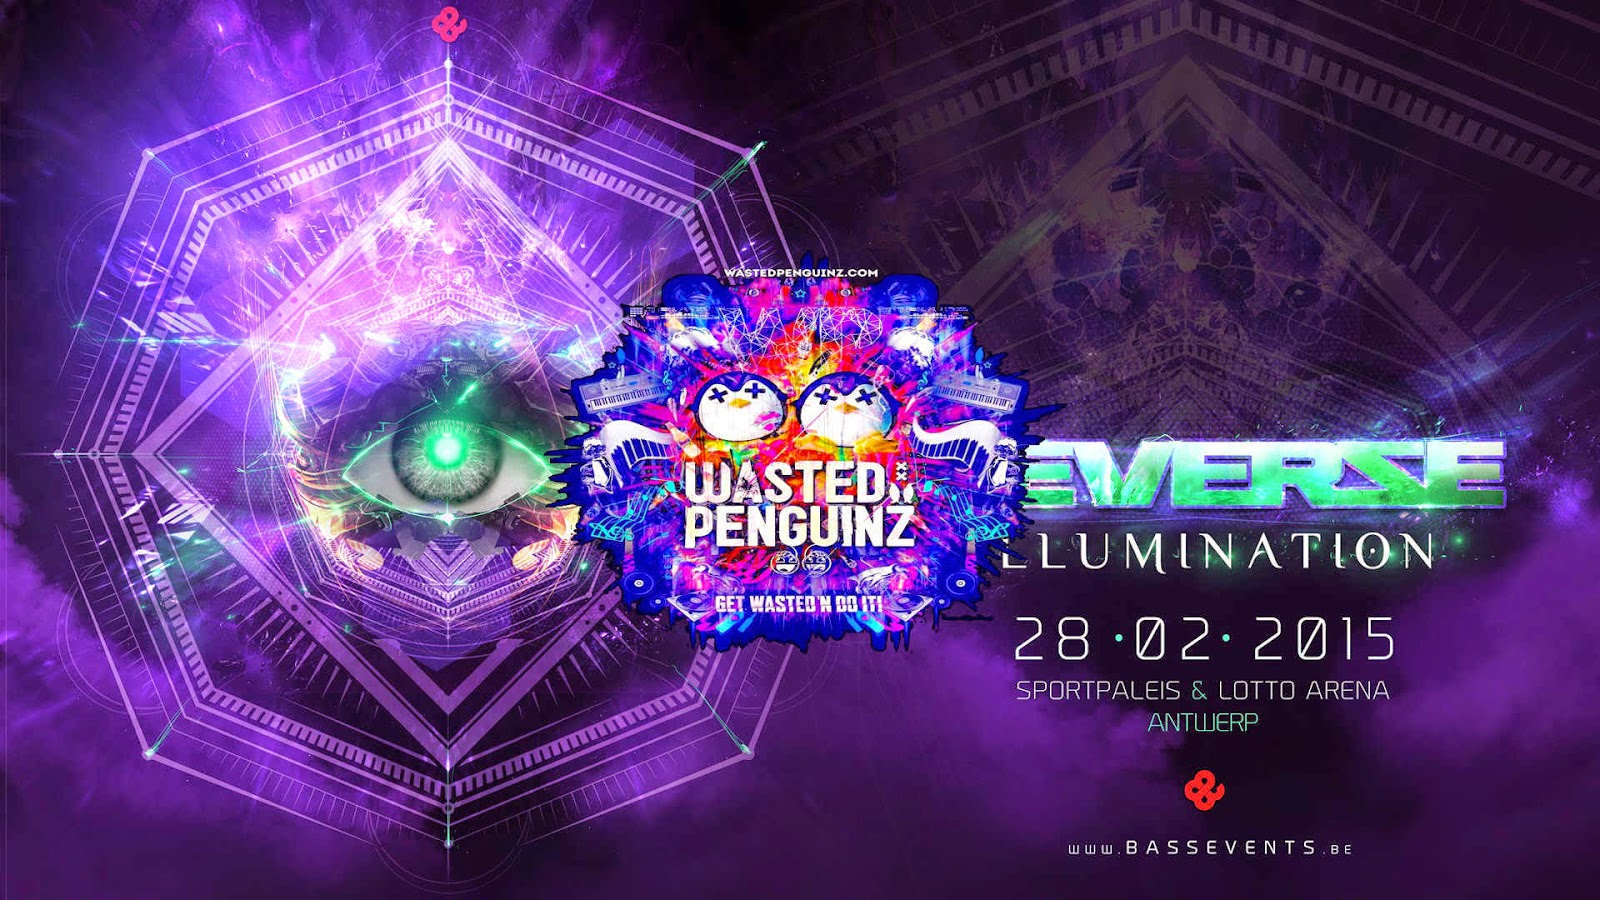 Wasted Penguinz @ Reverze 2015 Mainstage Thumbnail